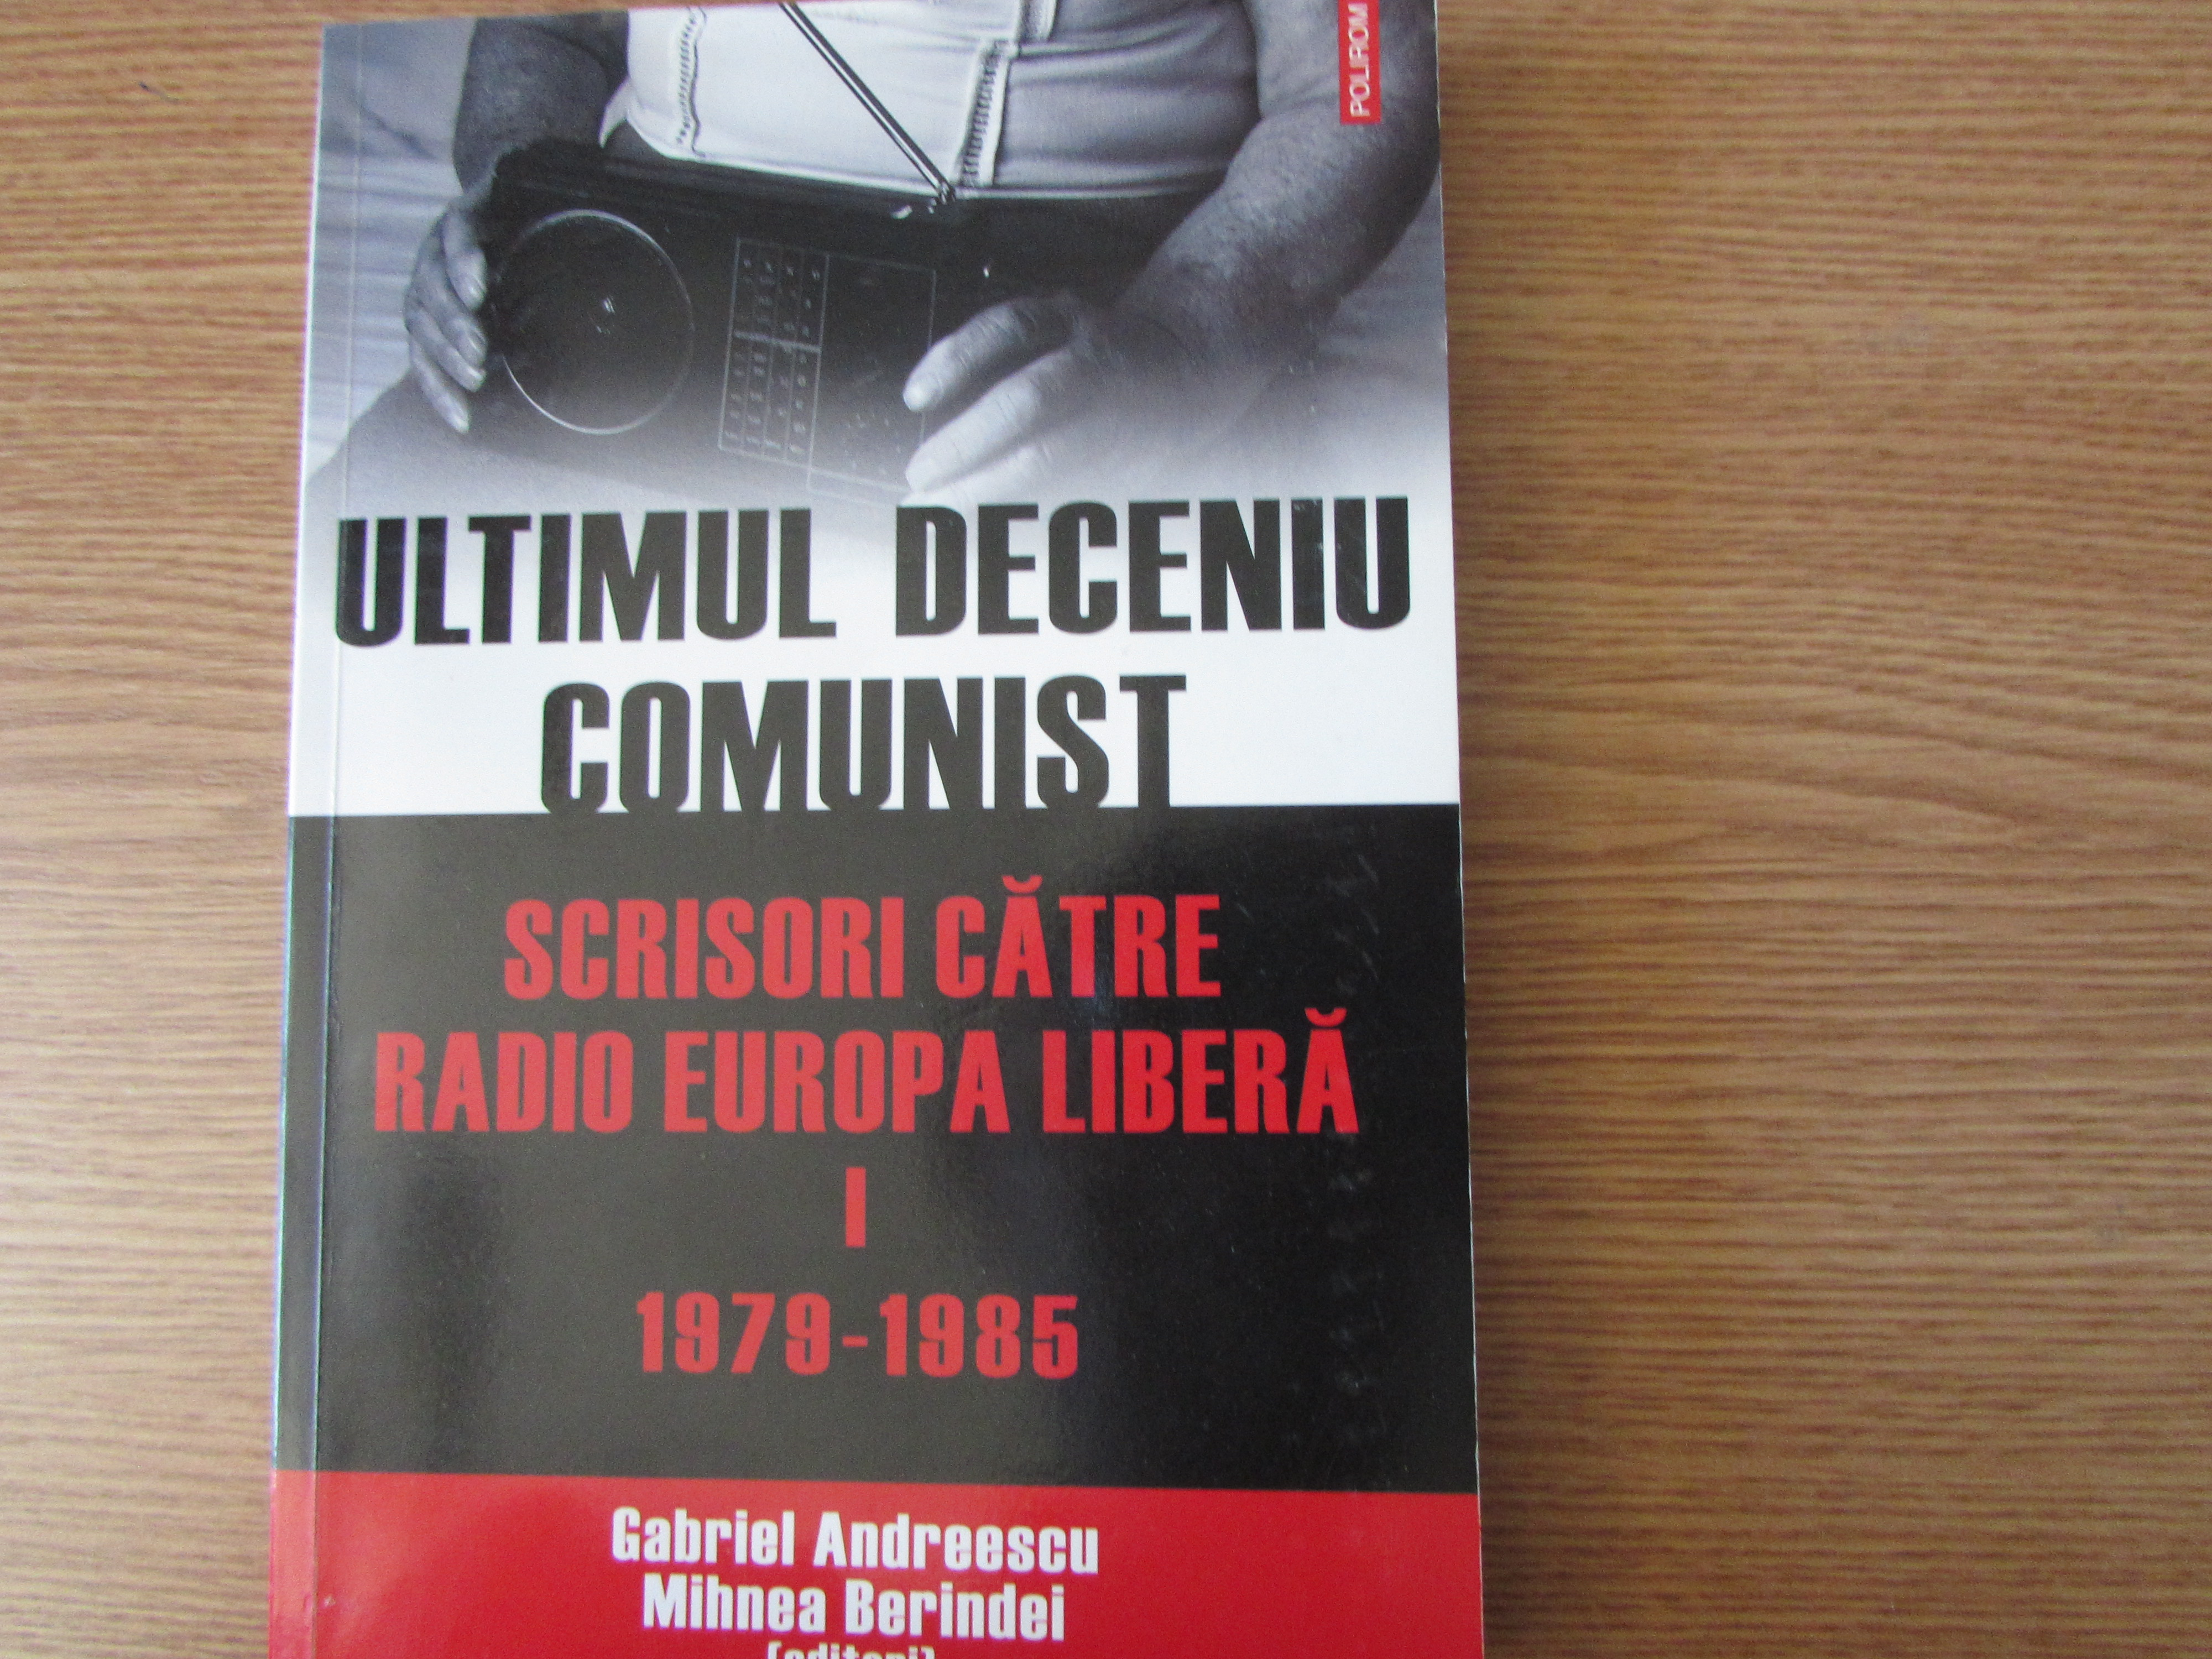 Cover of the first volume of the collection Ultimul deceniu comunist: Scrisori către Radio Europa Liberă (The last communist decade: Letters to Radio Free Europe), edited by Gabriel Andreescu and Mihnea Berindei (Iași: Polirom, 2010)